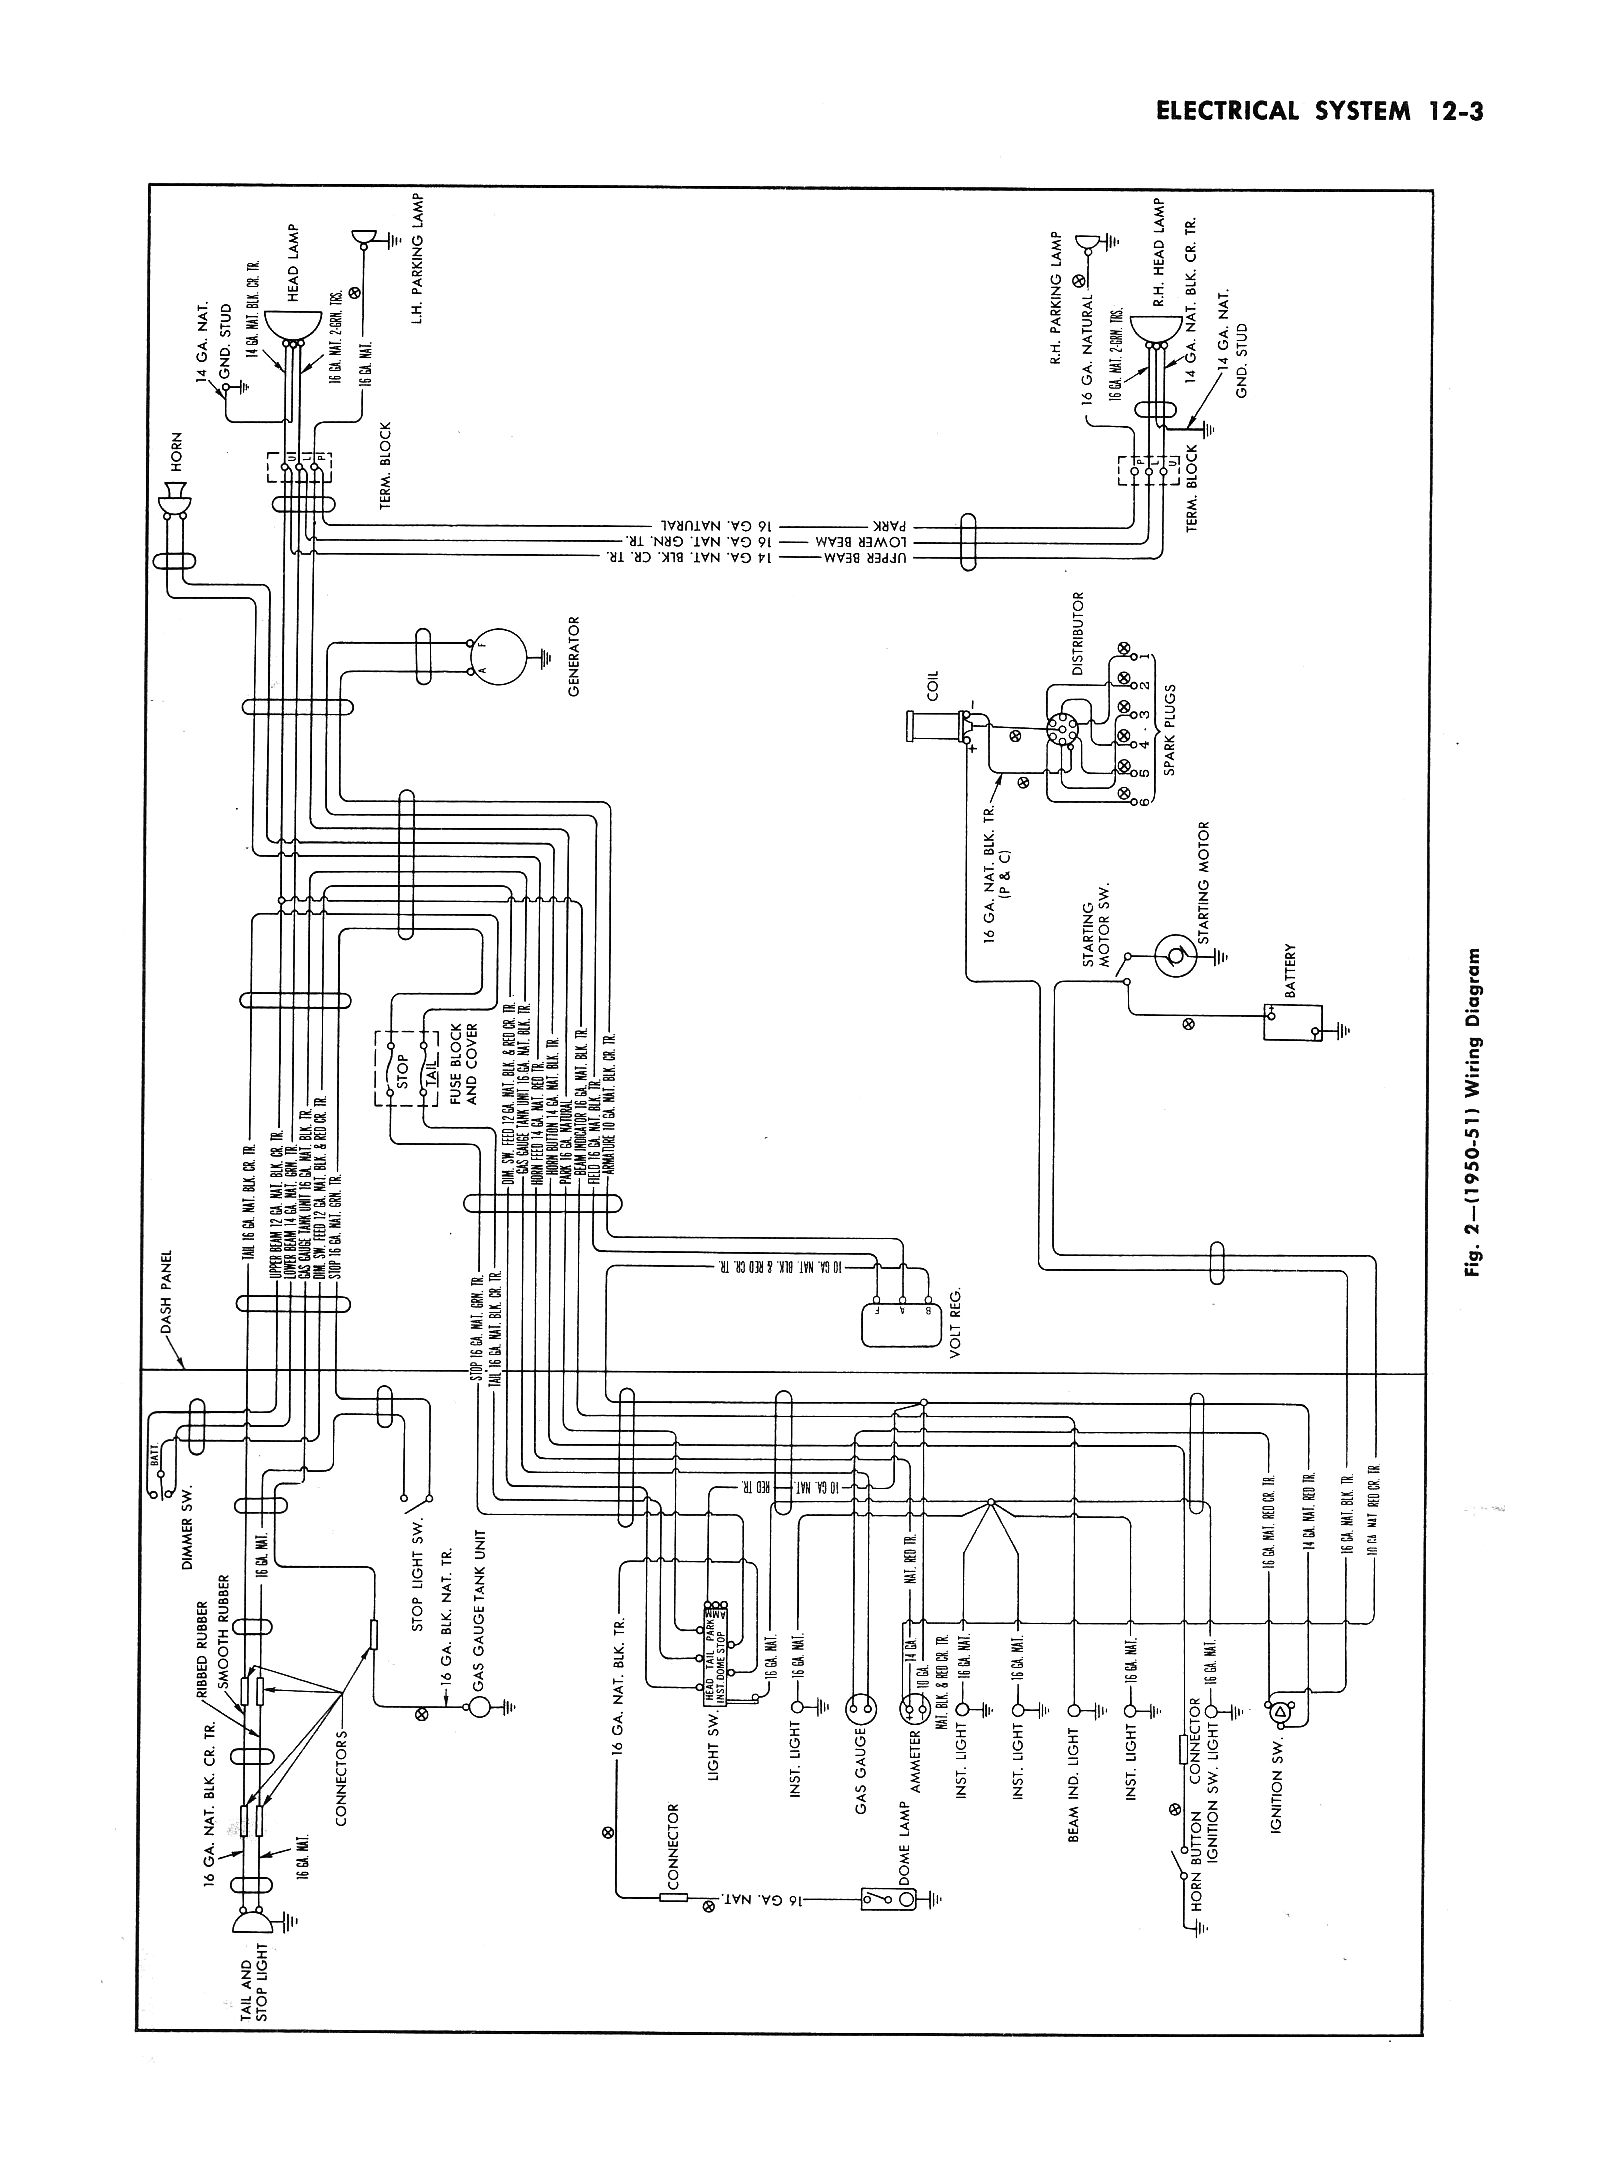 1948 Chevrolet Wiring Diagram Another Blog About 1928 Chevy Wire Diagrams Rh Oldcarmanualproject Com 3100